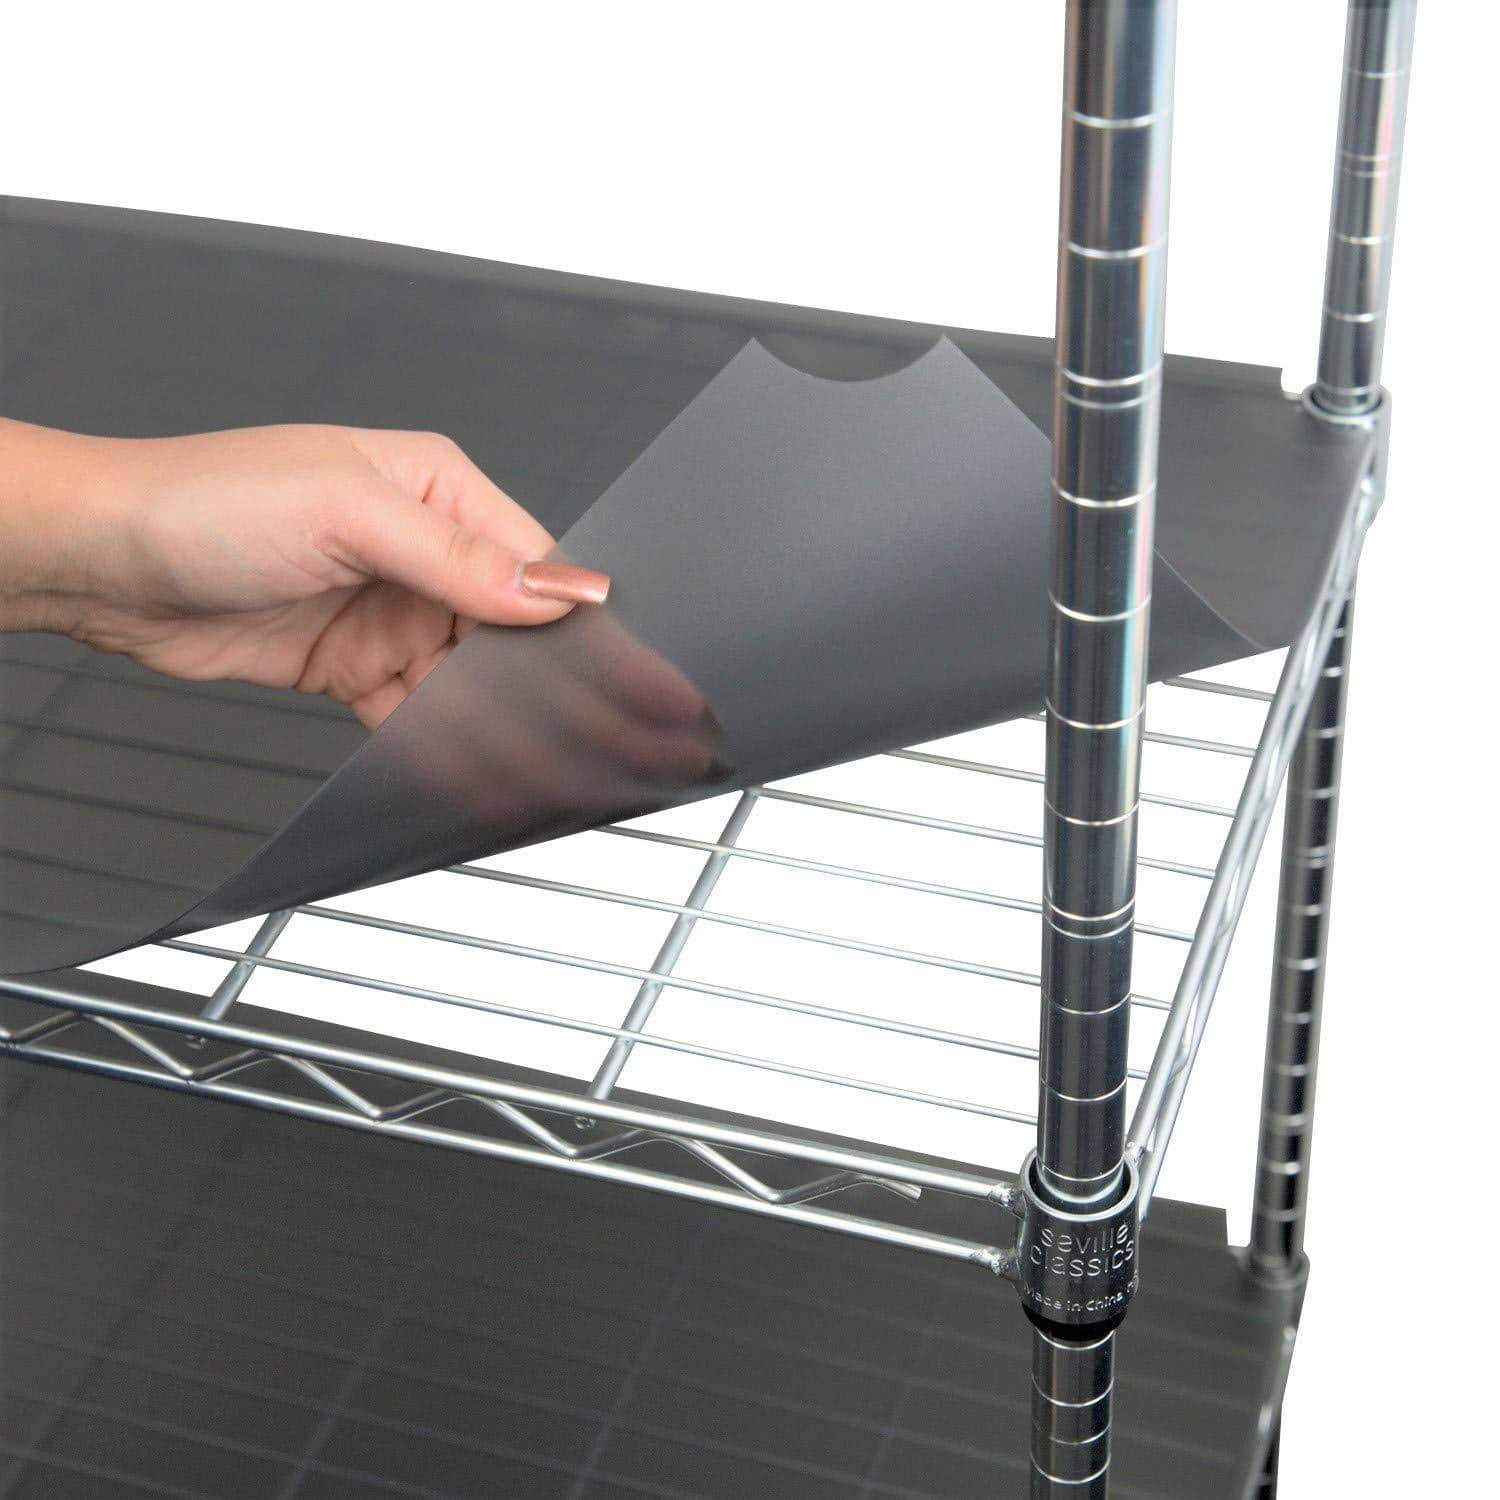 Get houseables wire shelf liner plastic non adhesive 14x30 5 pk clear gray utility rack protector mats for drawers kitchen cabinet tier shelving unit cupboard heavy duty nonslip waterproof